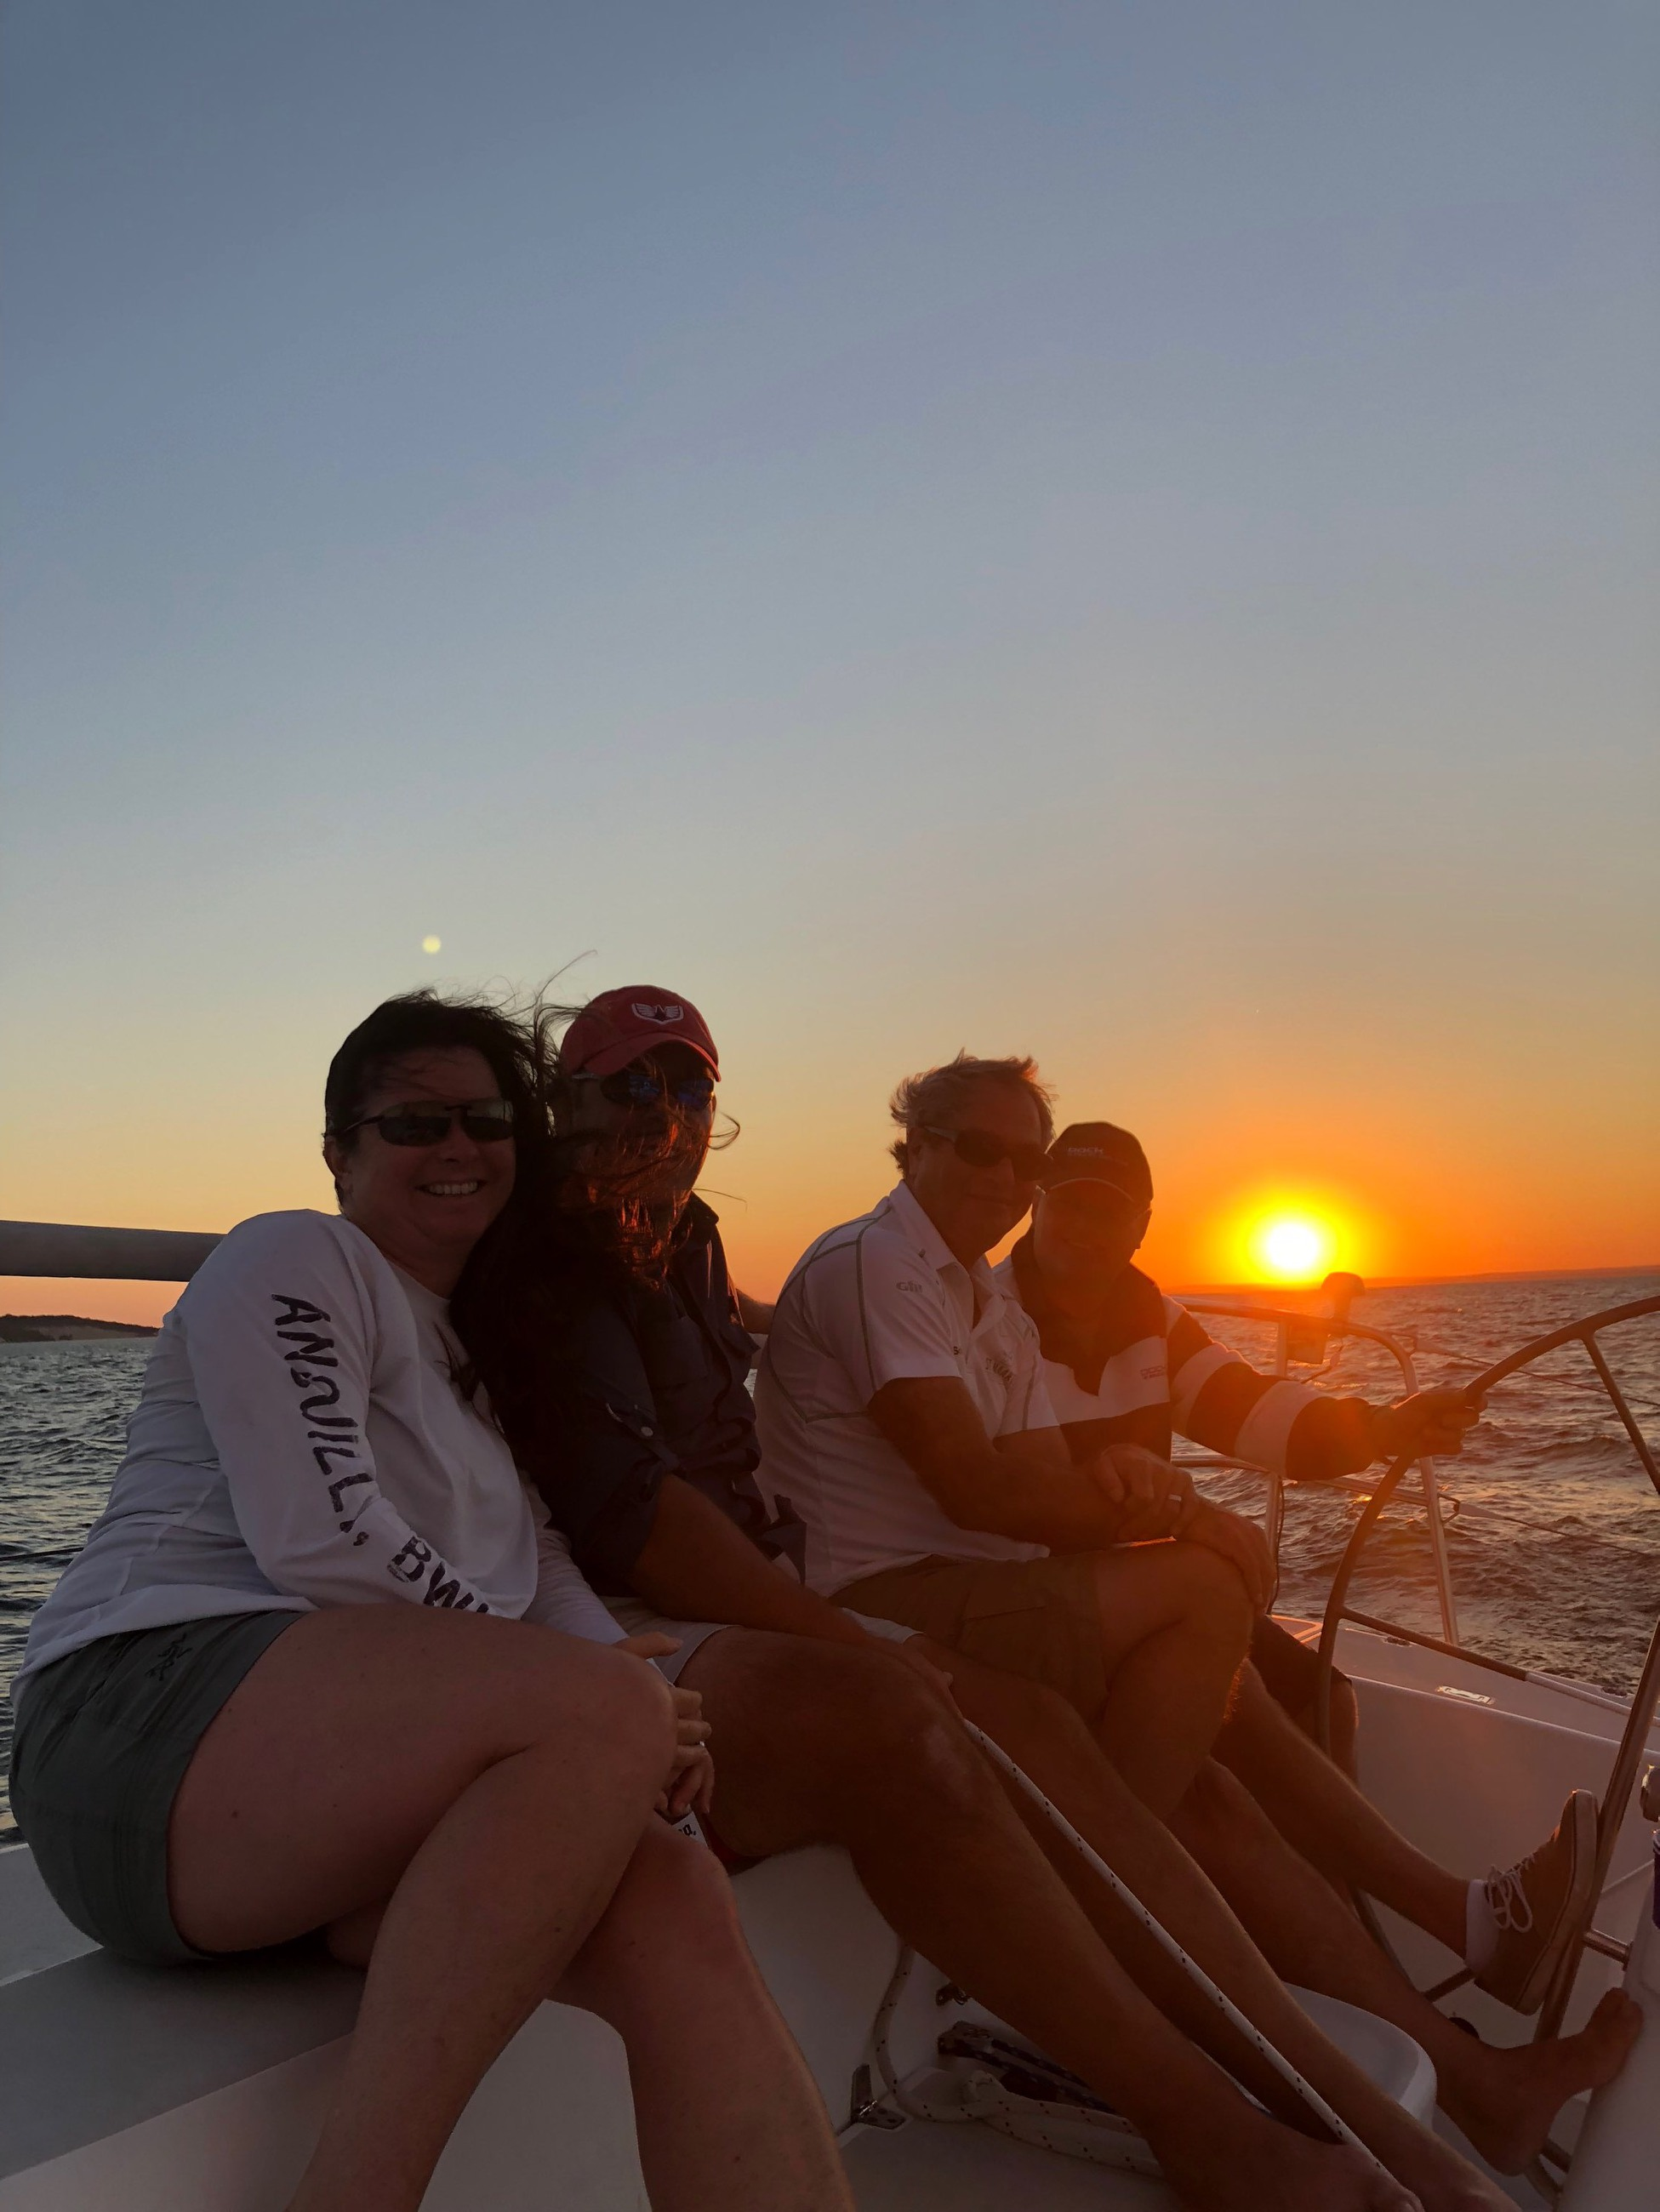 Our U.S. & Aussie families take a sunset sail in Huntington Bay to celebrate SeaPen's introduction to the U.S. market.